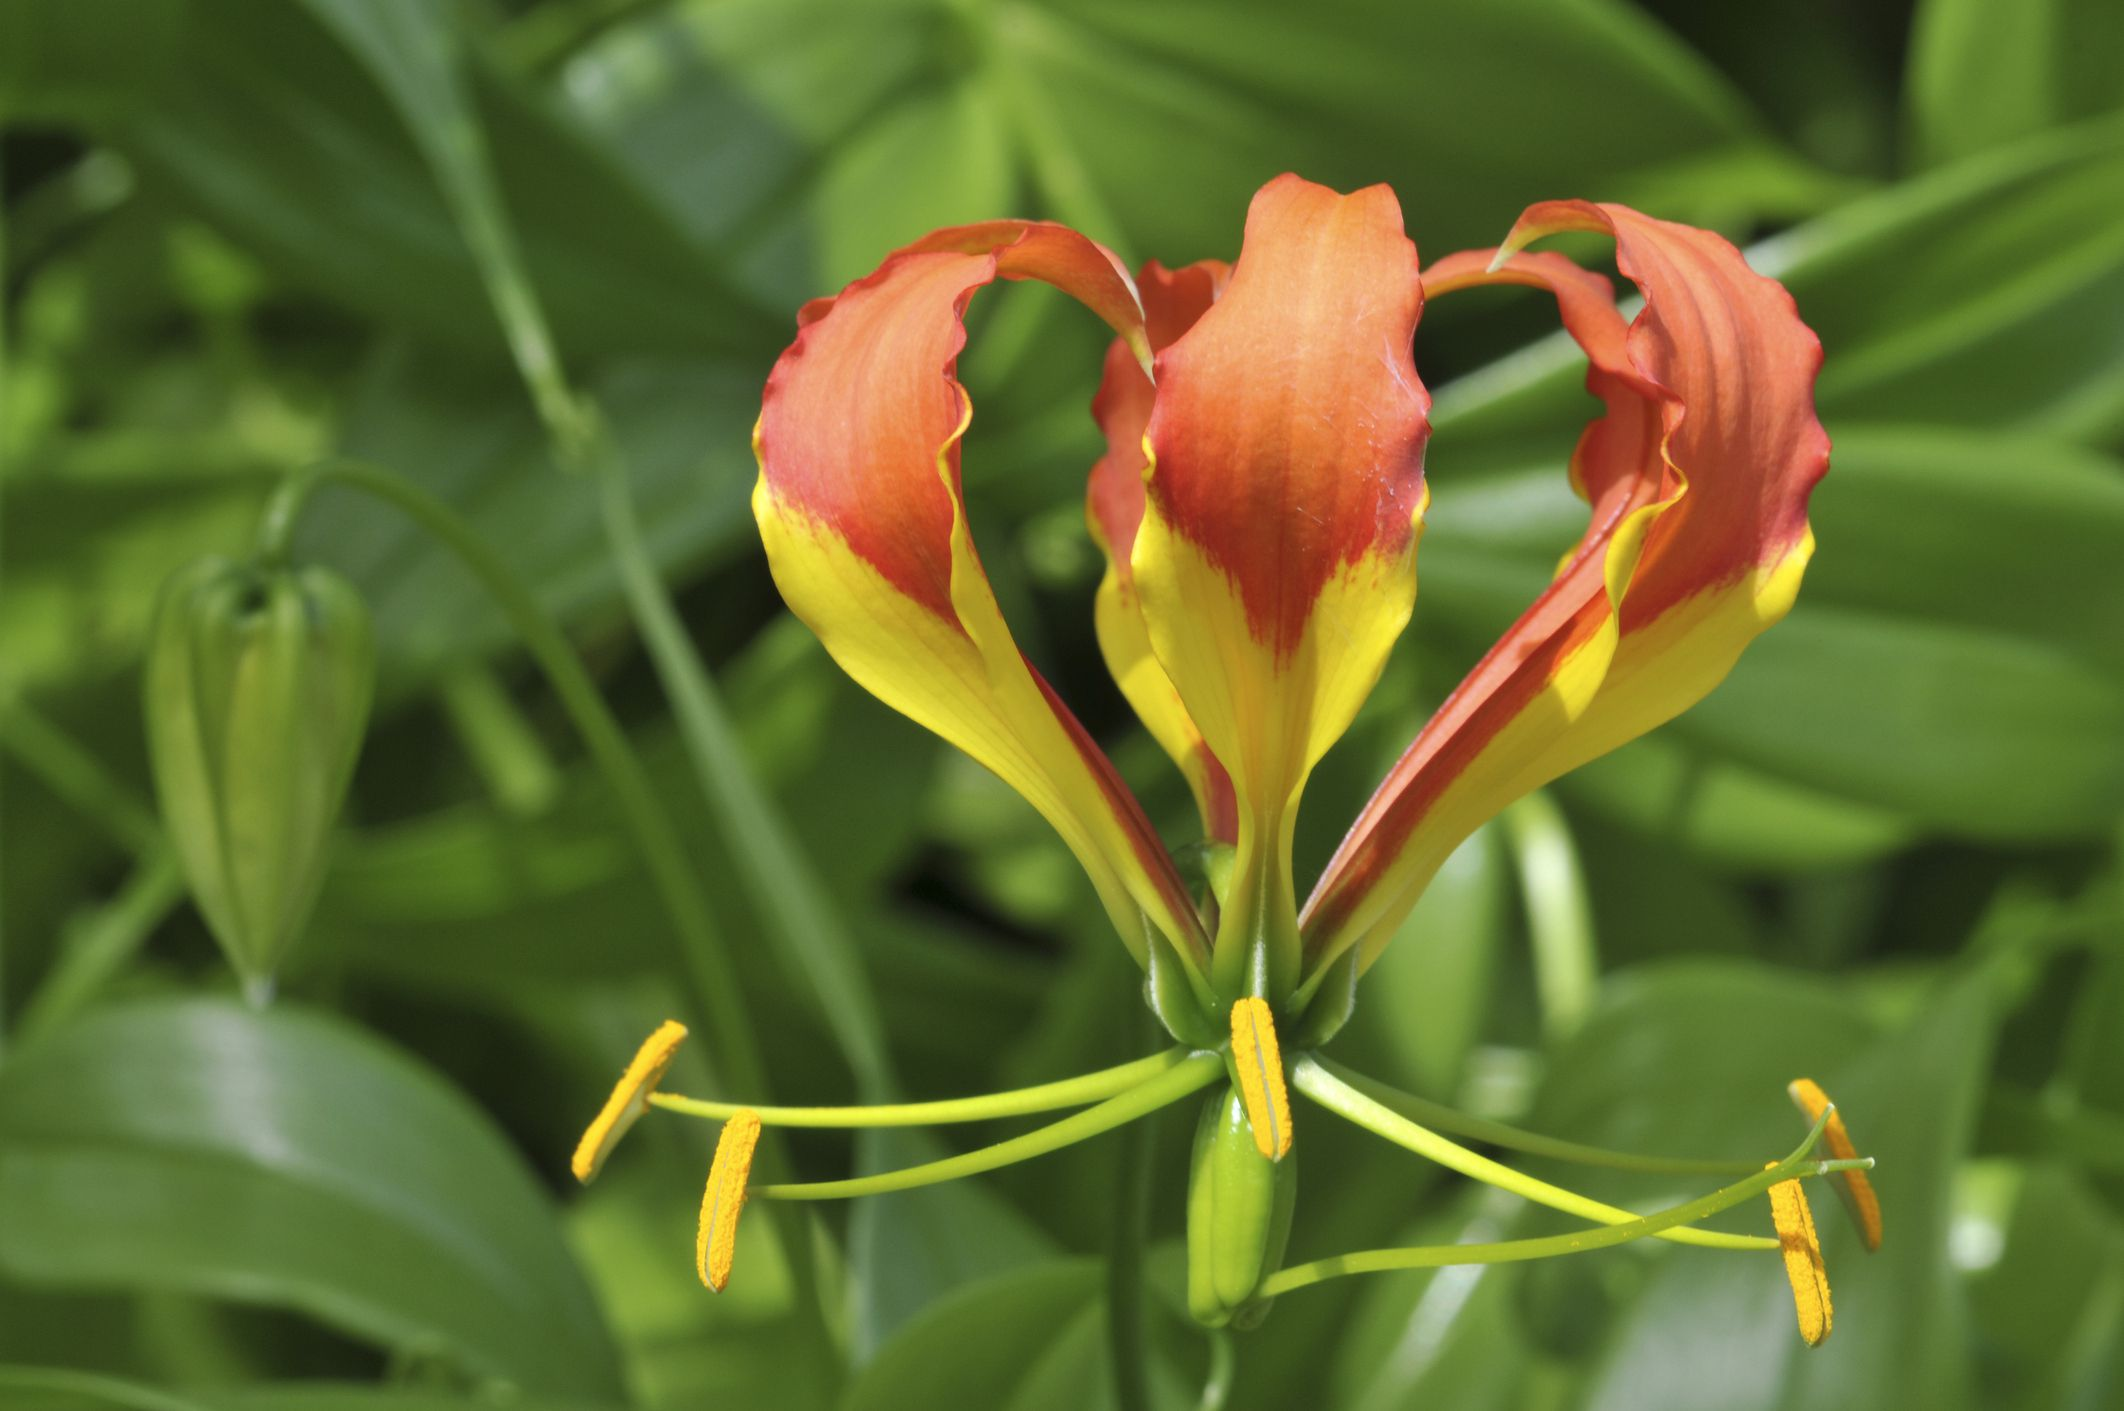 How to Grow and Care for Gloriosa Lily